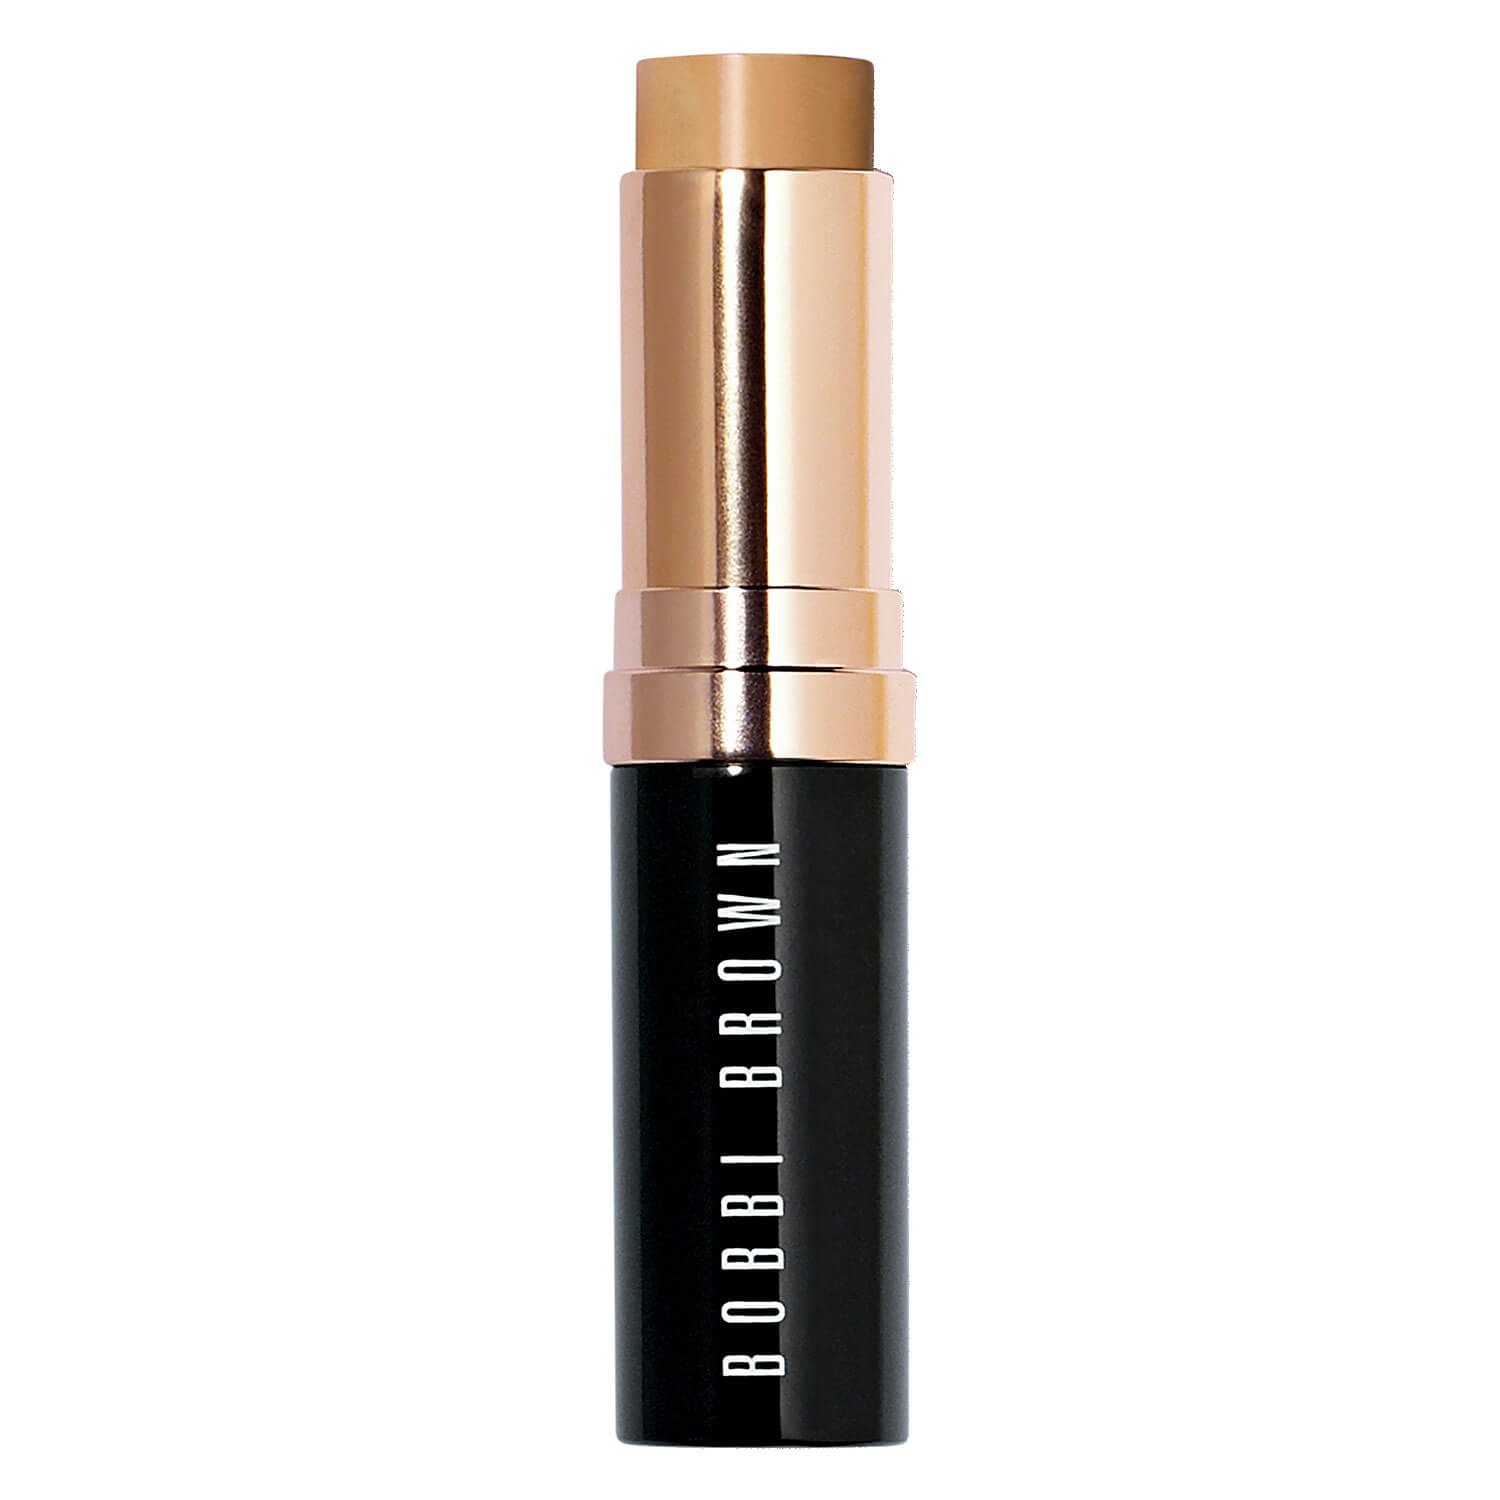 BB Foundation - Skin Foundation Stick Natural Tan 4.25